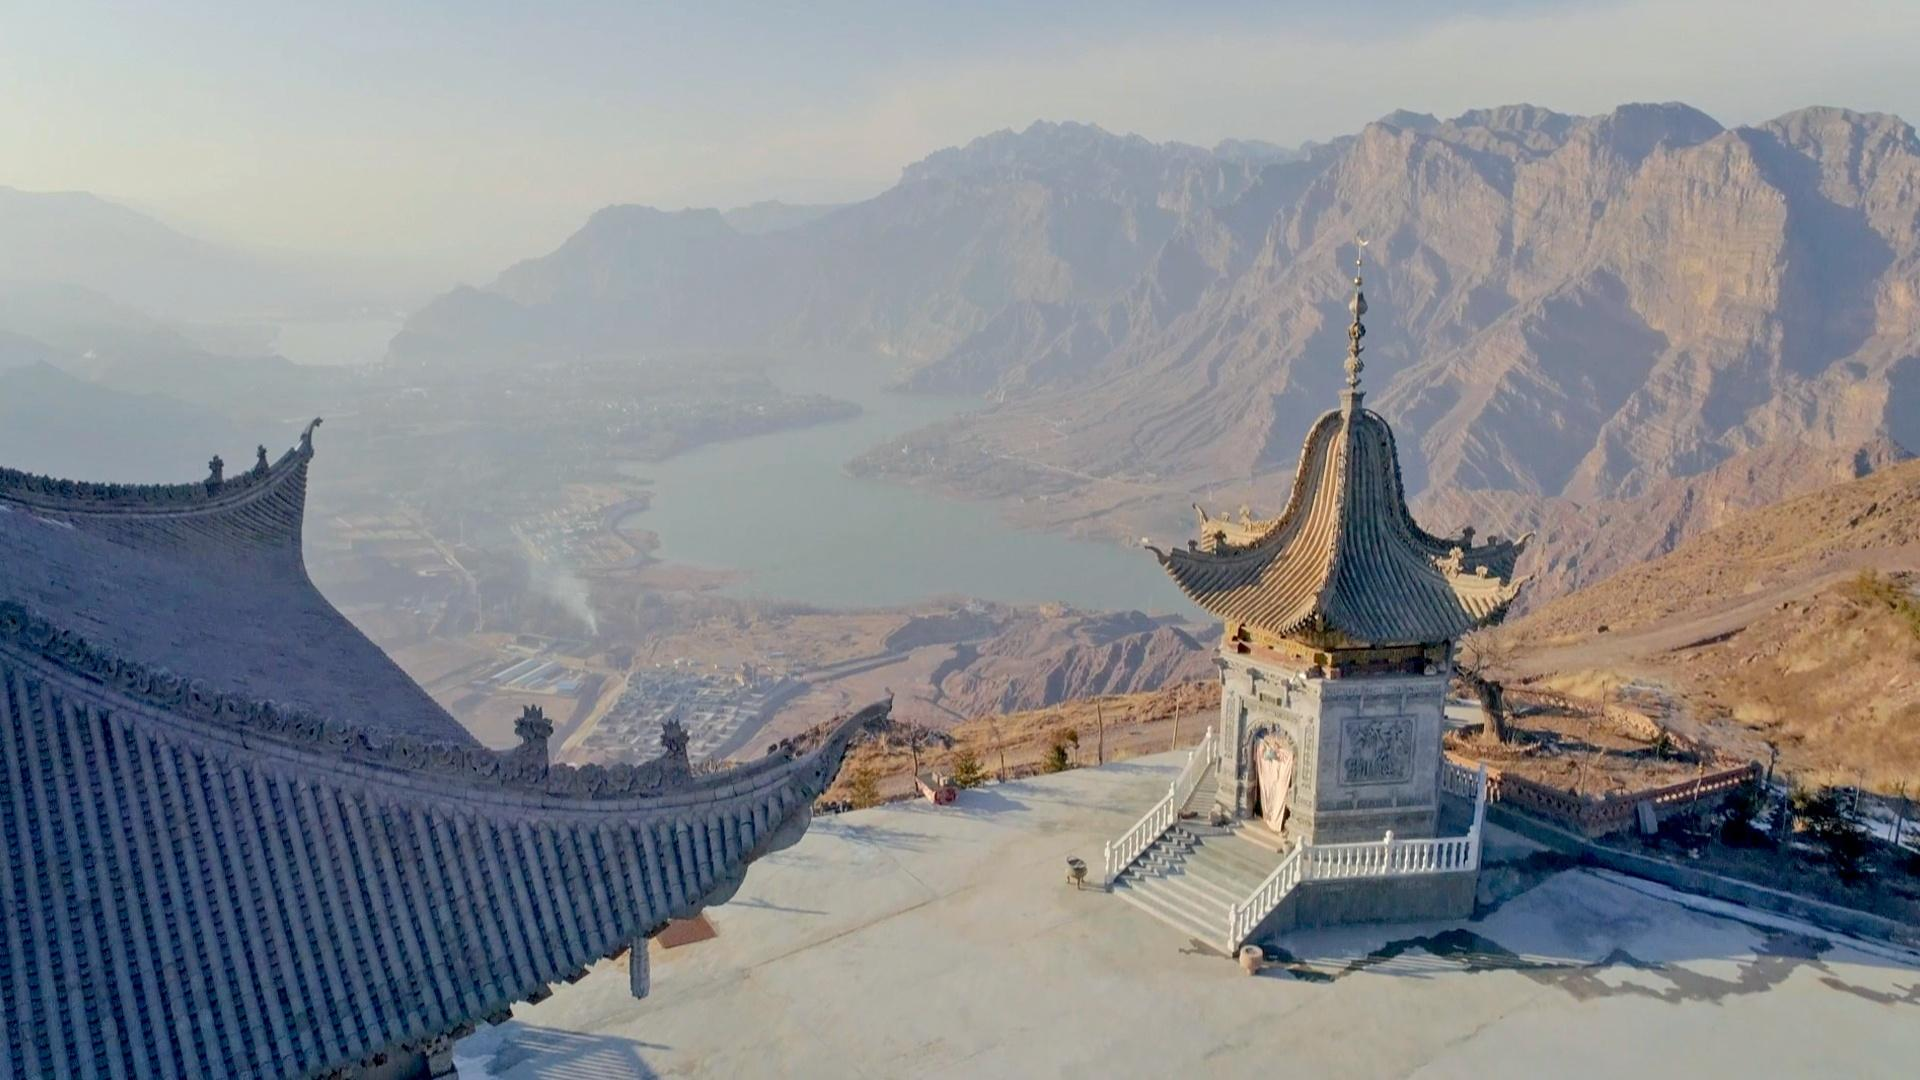 Pagodas overlooking China's ancient Yellow River Valley.